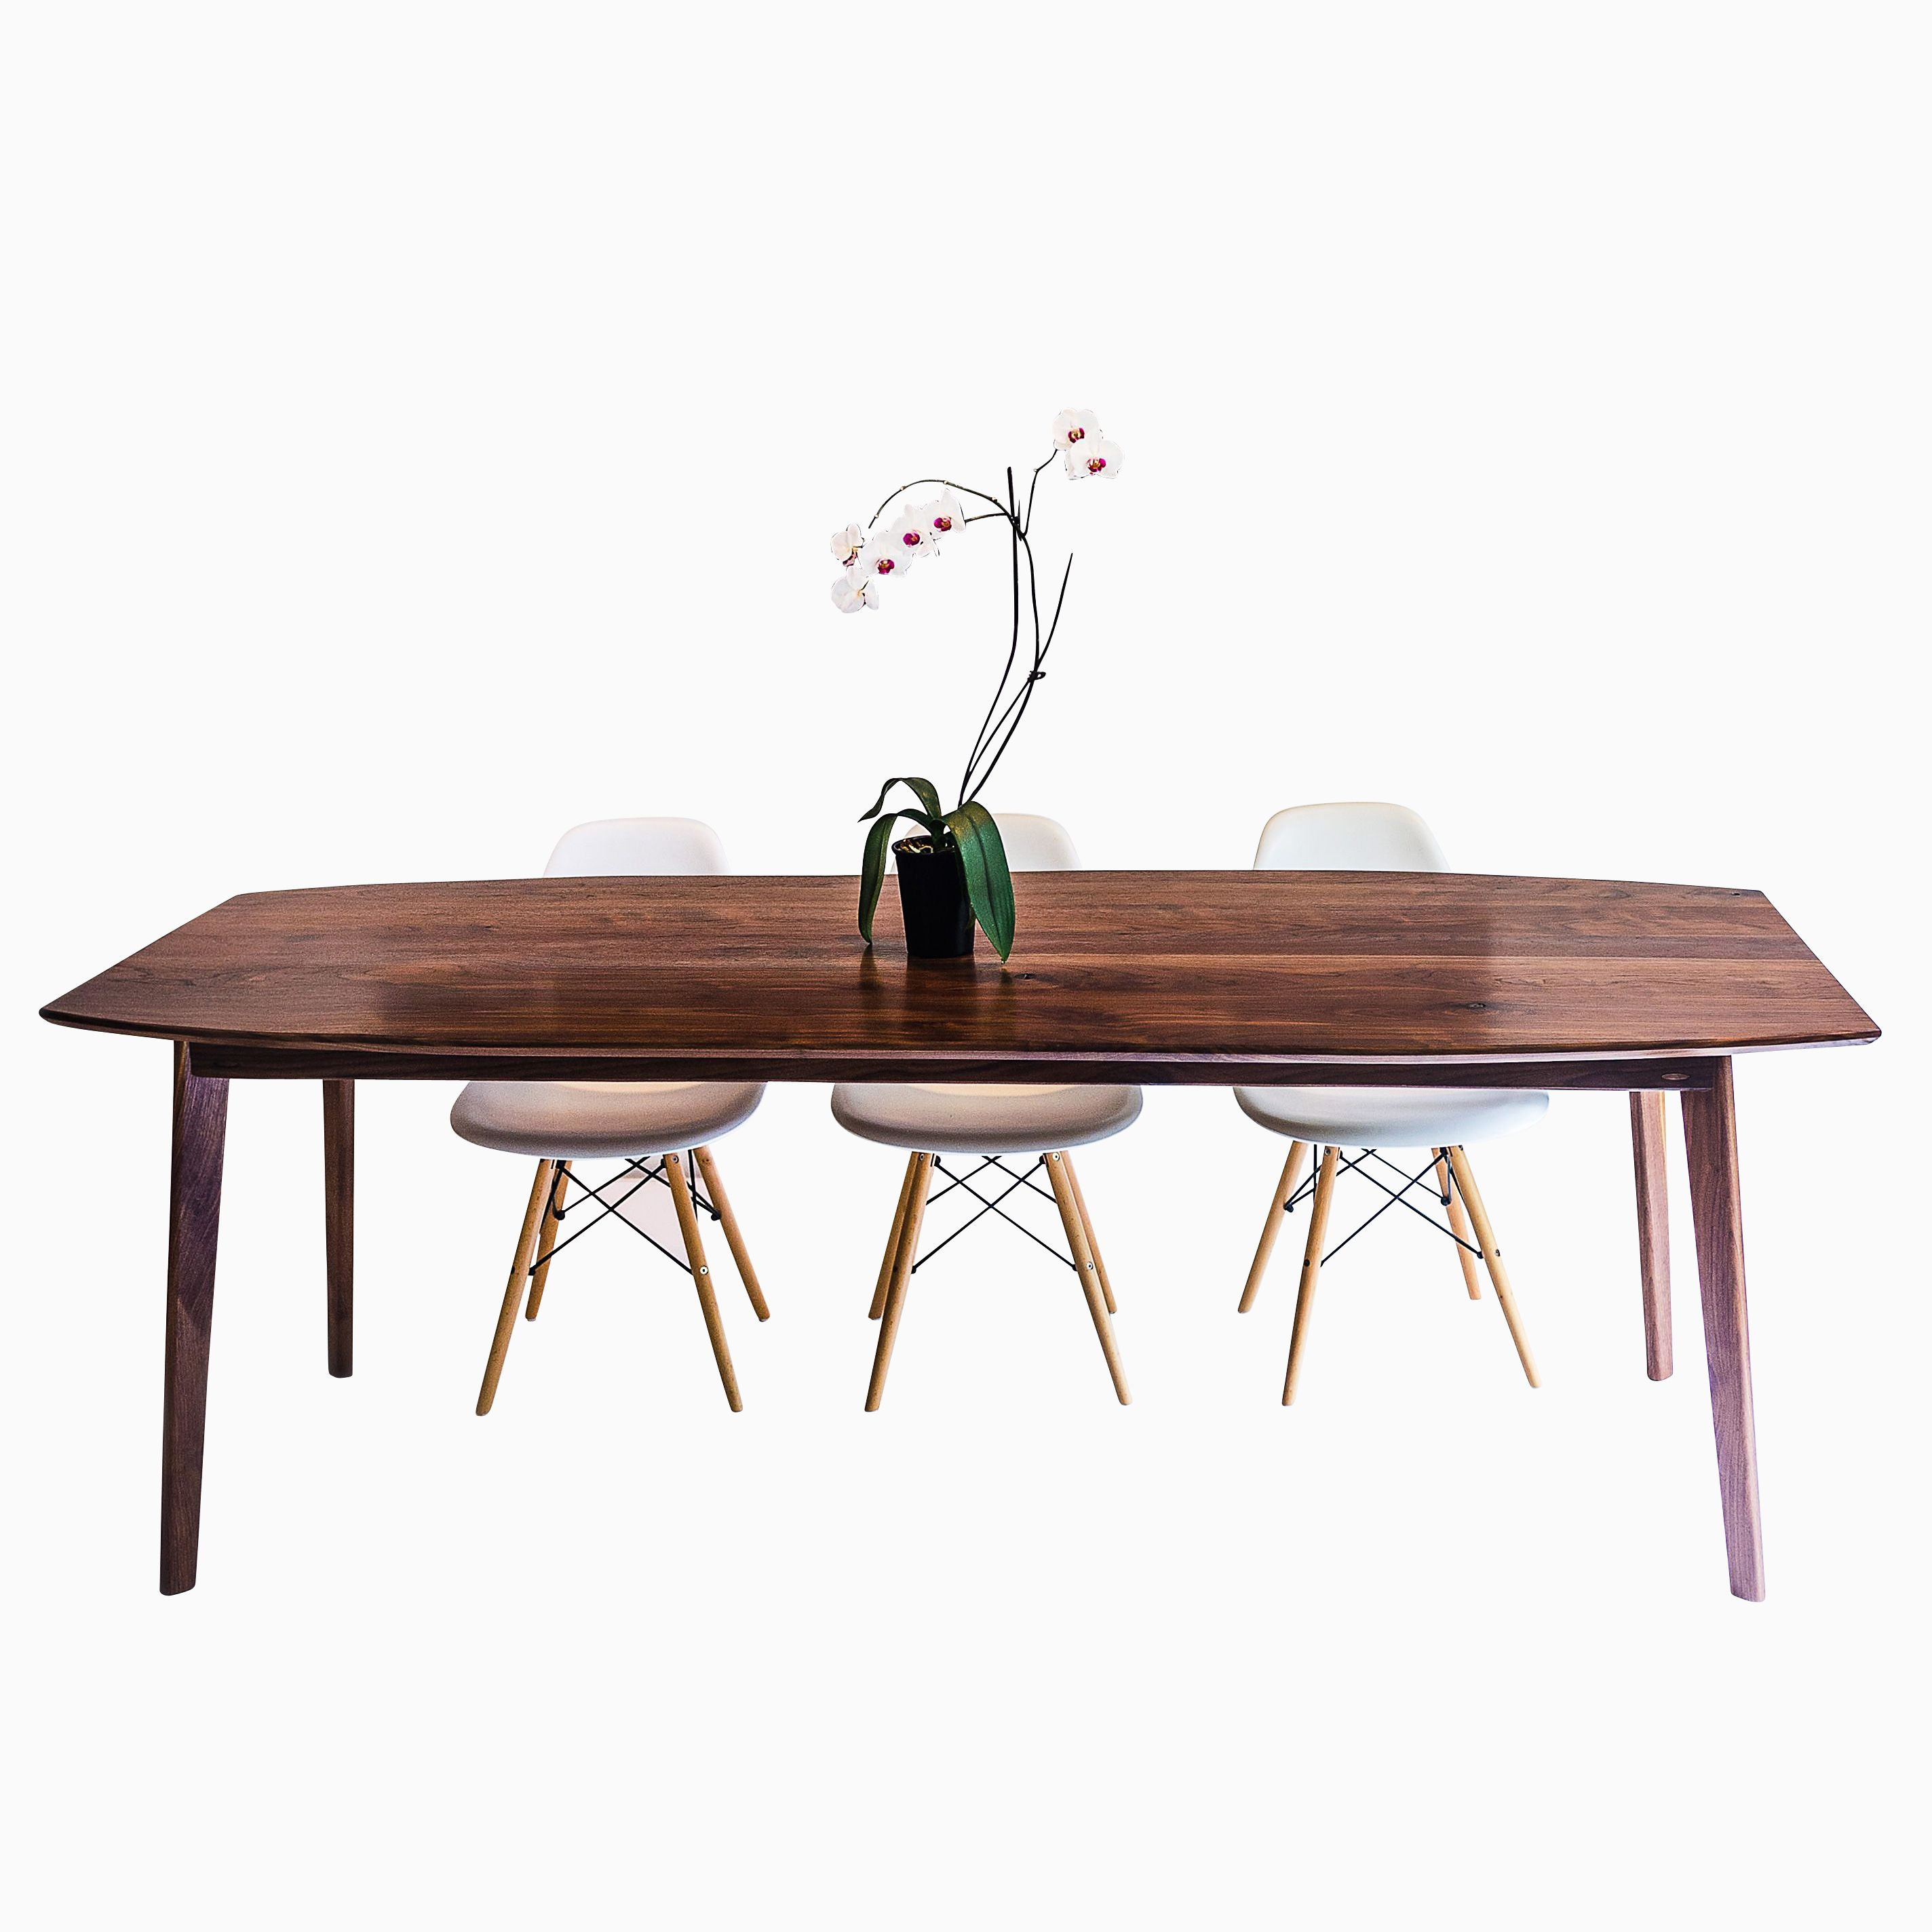 Mid century dining table - Custom Made The Santa Monica Solid Black Walnut Dining Table Mid Century Modern